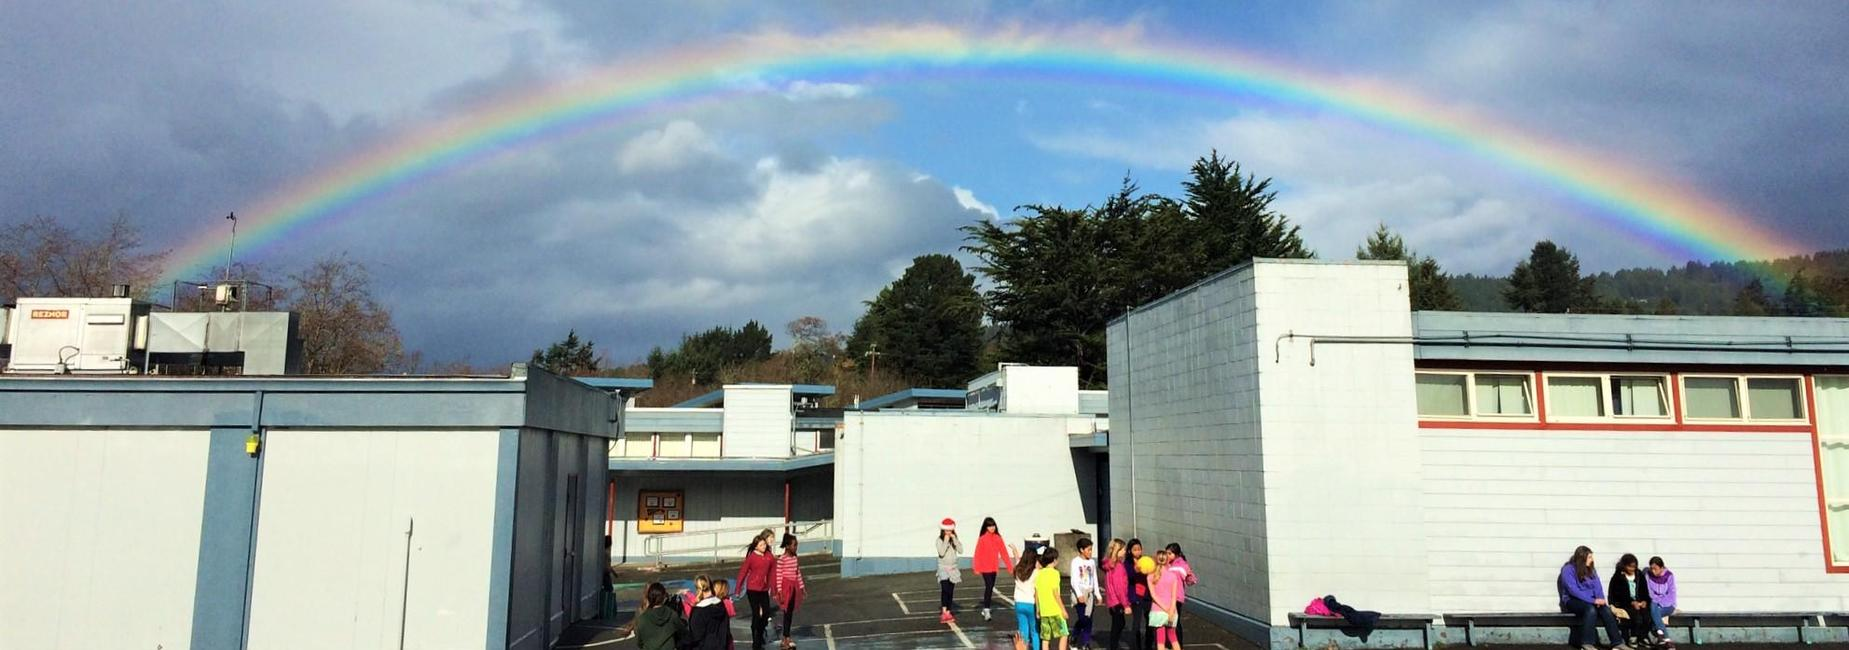 Rainbow over Jacoby Creek School